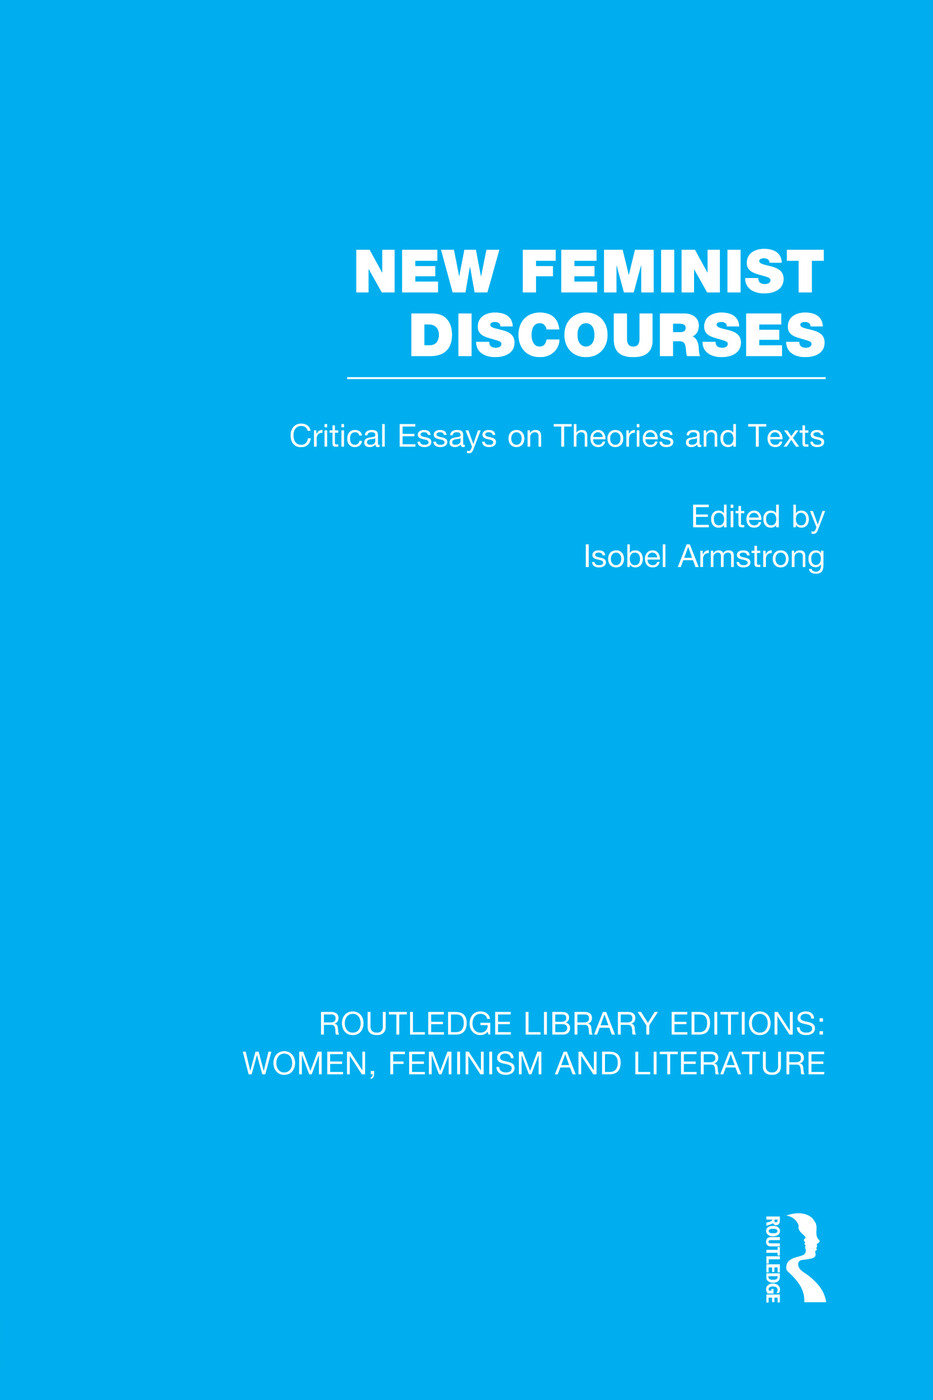 New Feminist Discourses: Critical Essays on Theories and Texts book cover